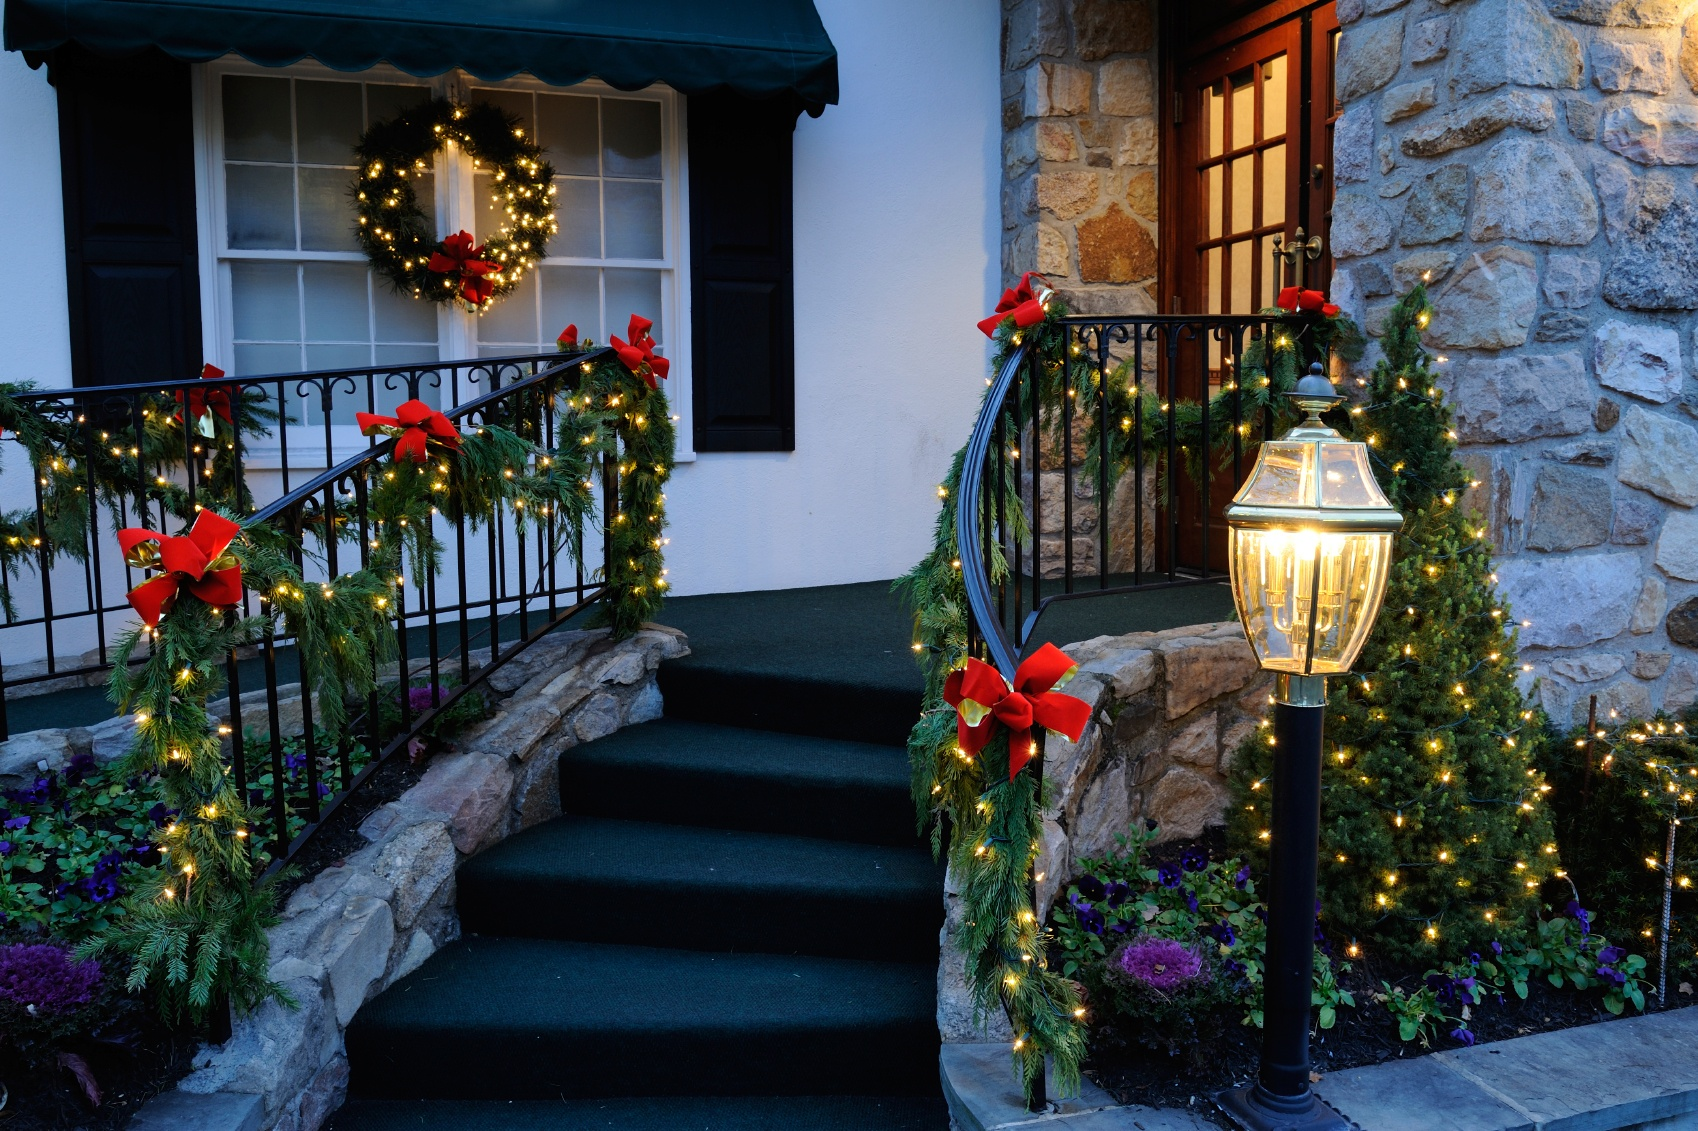 porch railing christmas ideas - How To Decorate Outdoor Stairs For Christmas